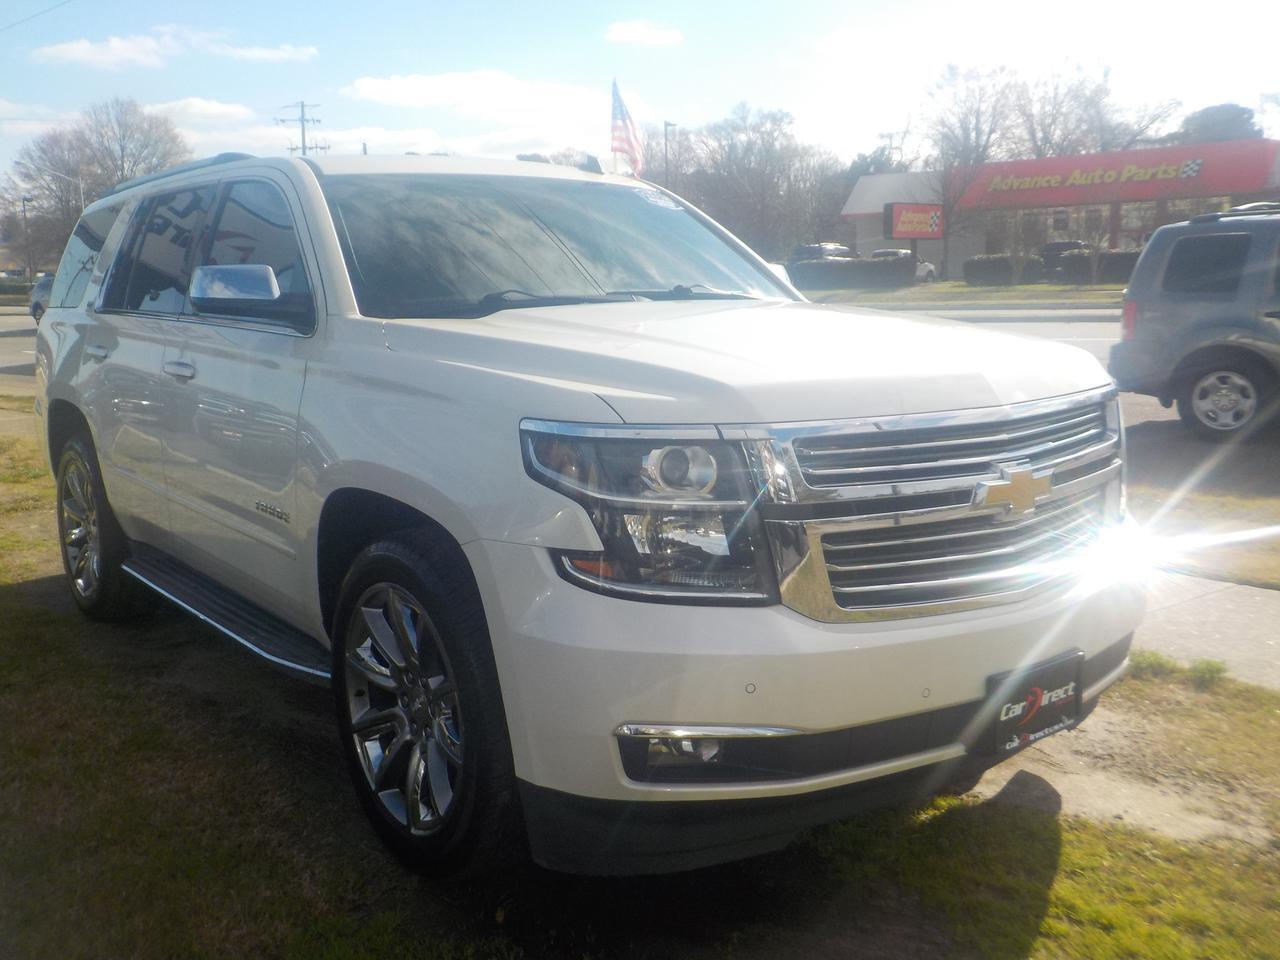 2015 CHEVROLET TAHOE LTZ 4X4, NAVIGATION, LEATHER, SUNROOF, HEATED & COOLED SEATS, BACKUP CAMERA, REMOTE START! Virginia Beach VA